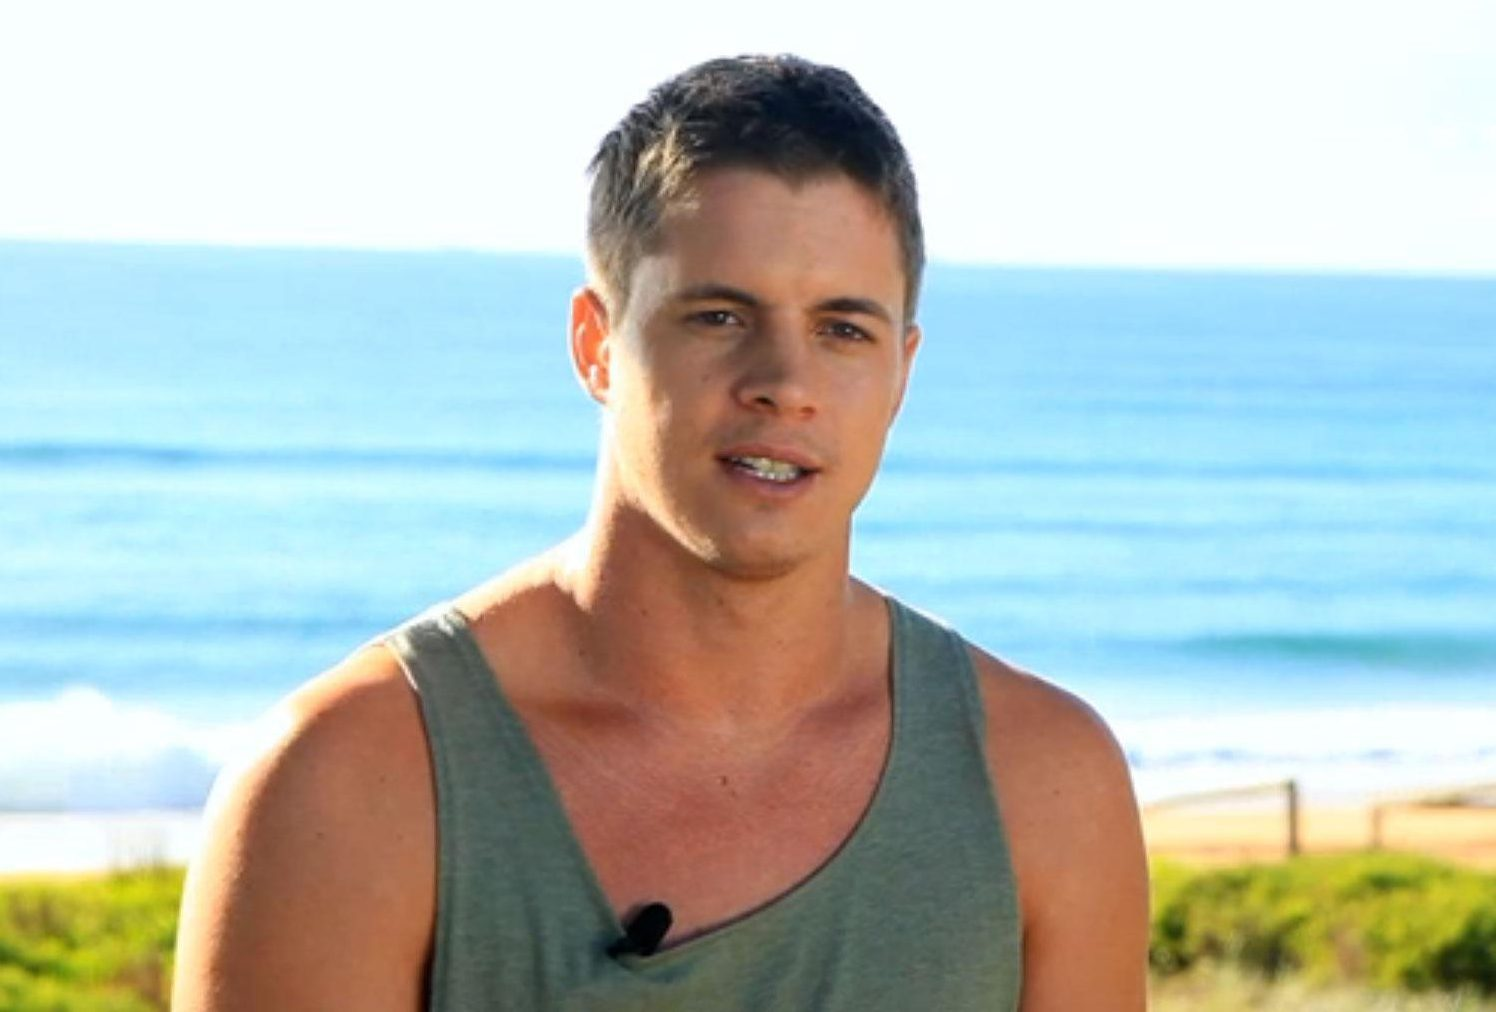 Home And Away's Johnny Ruffo shares emotional post after 'beating brain cancer'